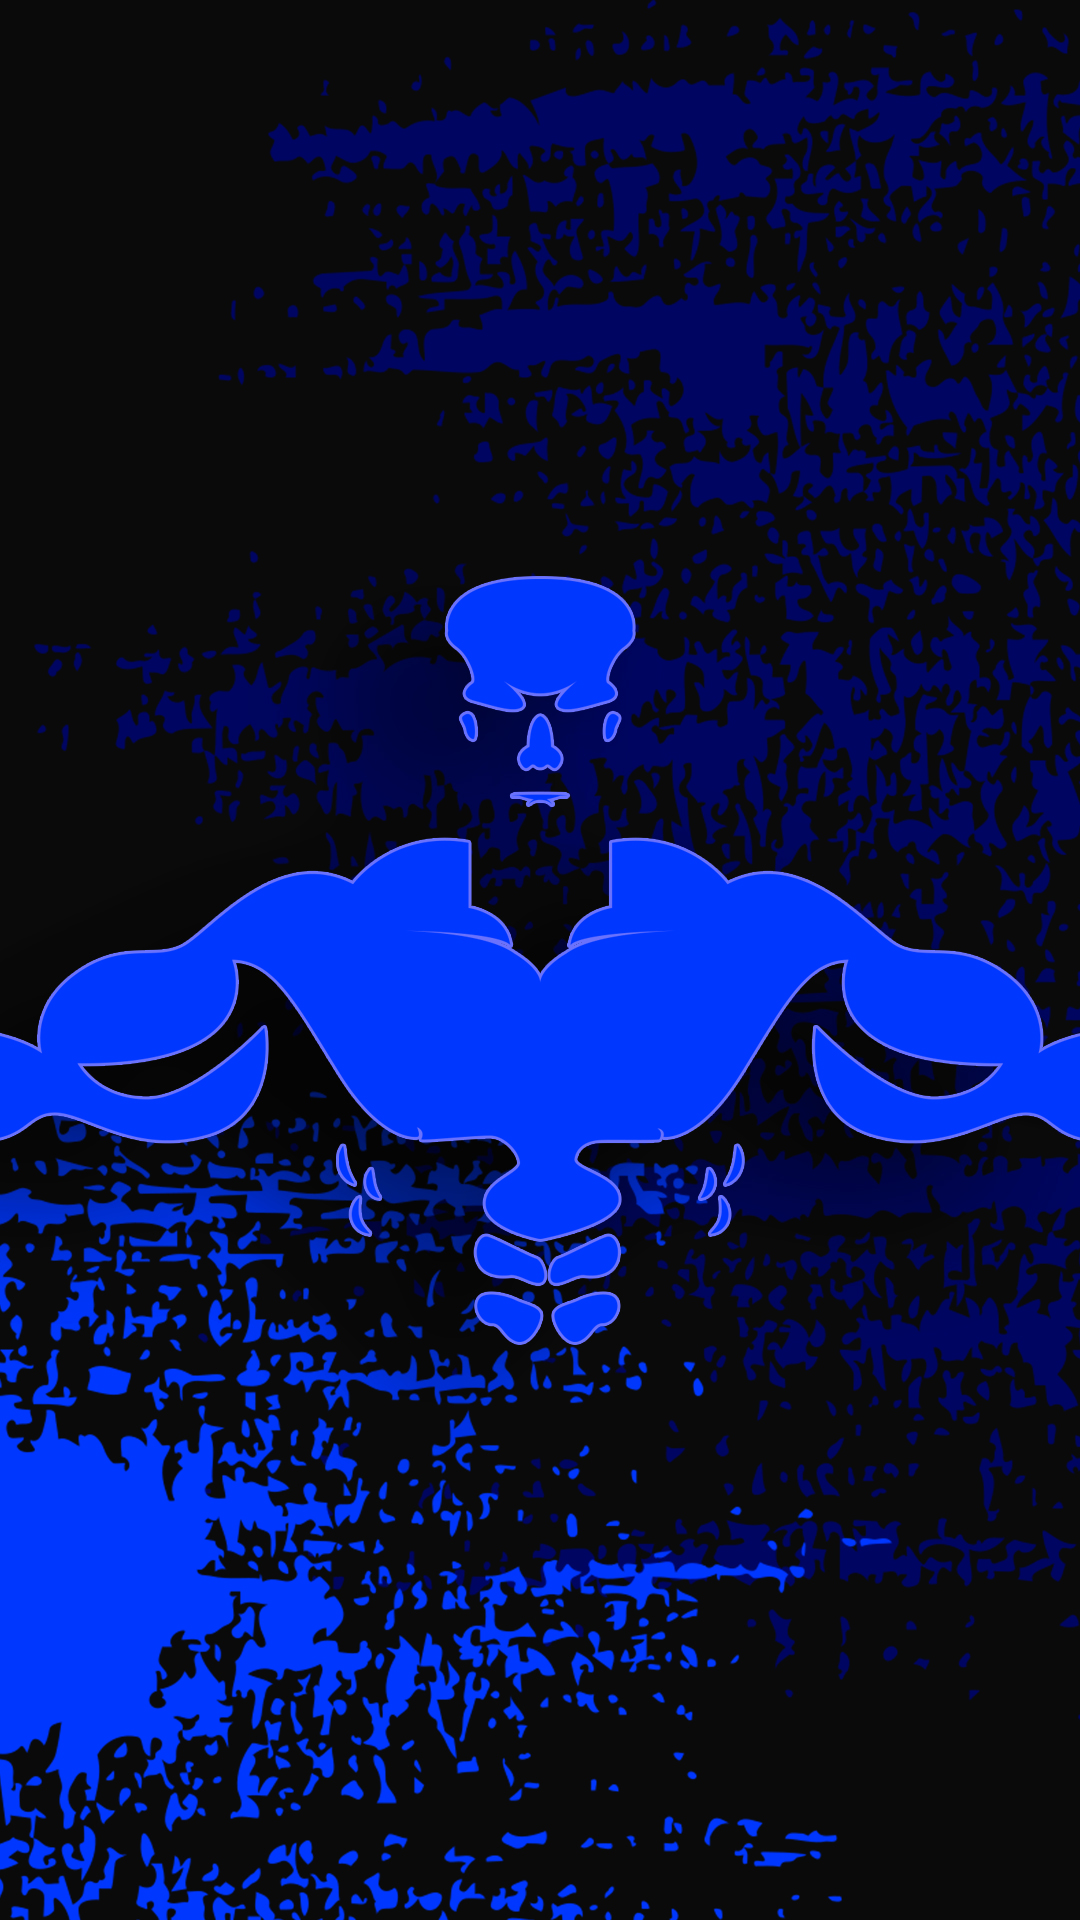 Bodybuilding Wallpaper For Iphone X Bodybuilder Blue Hd Phone Wallpaper